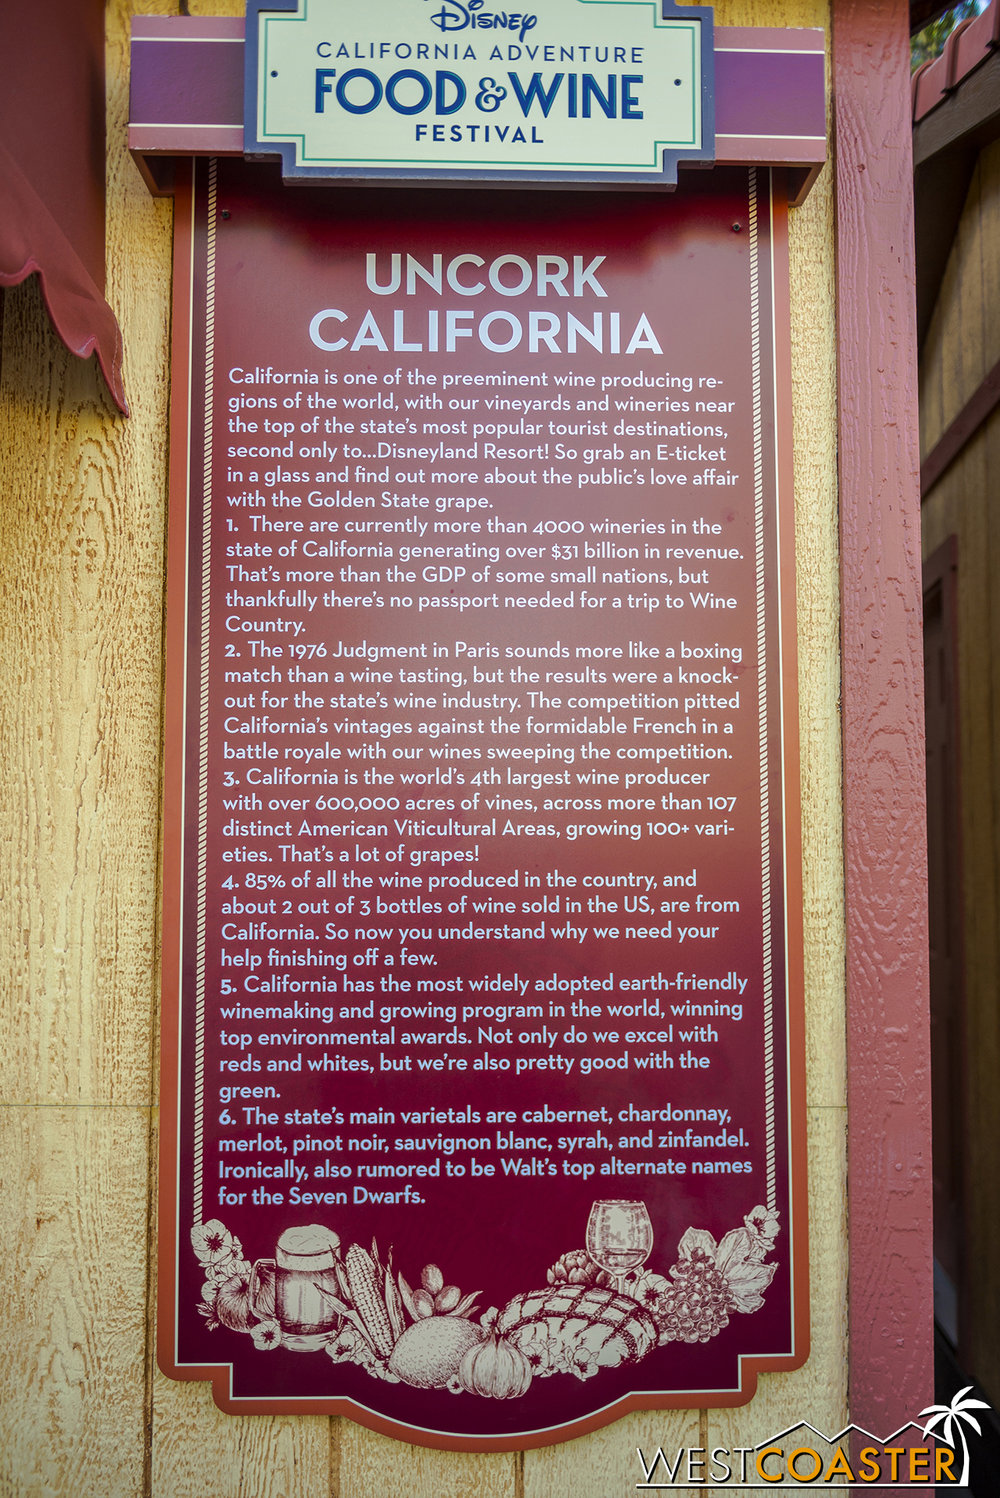 DLR-17_0314-H-Descriptions-02-UncorkCalifornia.jpg